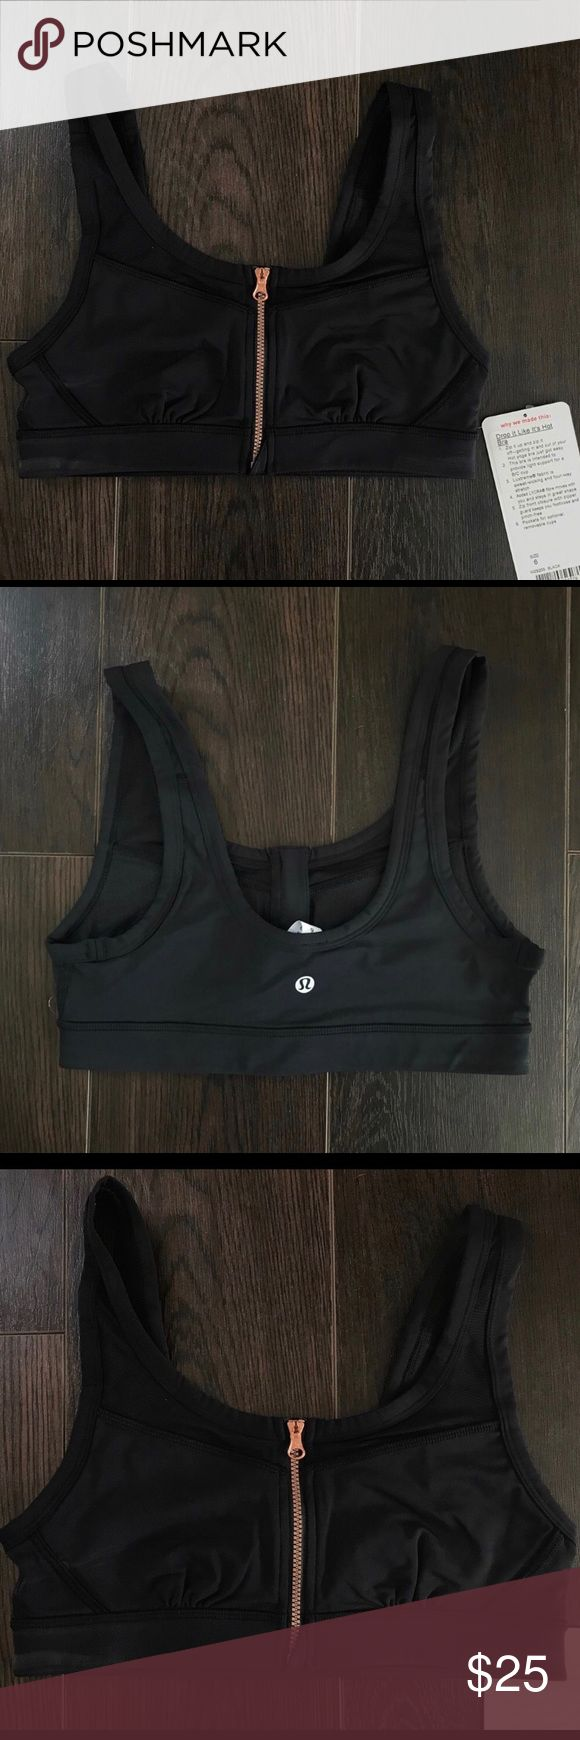 Lululemon Drop It Like It's Hot Bra This bra is brand new, never worn and still has original tag attached!  DISCLAIMER: The zipper has very little use, primarily for cosmetics only! I had one Posher return this prior to purchasing, stating that the zipper did not stay up well. Although the hang tag states light support for a B/C cup size, this bra is definitely geared toward someone with a more petite bust size!! Also does not include removable cups. lululemon athletica Intimates & Sleepwear…